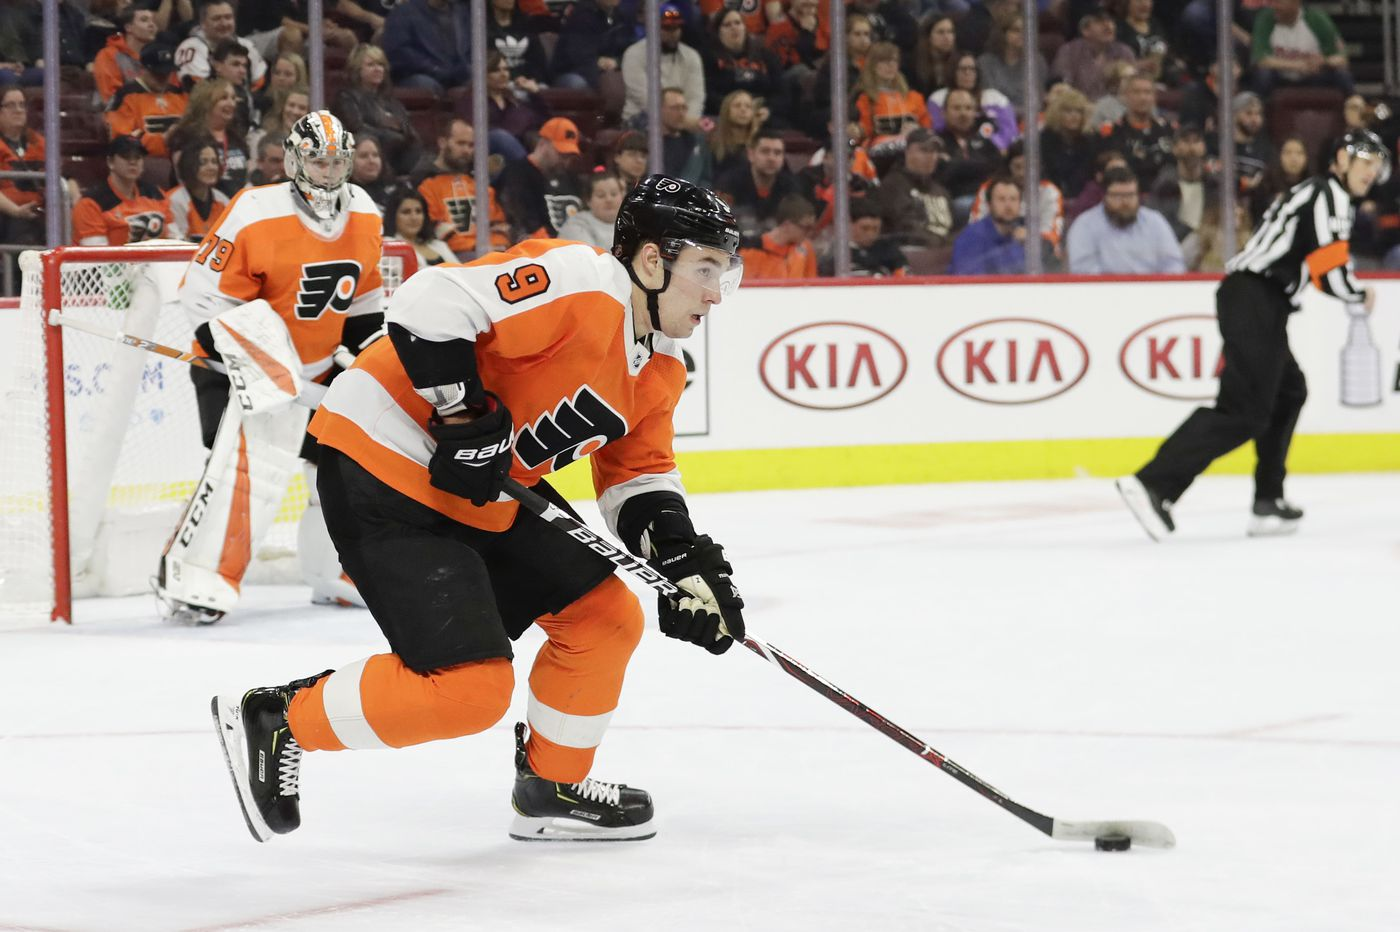 With Scott Laughton signed, Flyers GM Chuck Fletcher turns toward Ivan Provorov and Travis Konecny